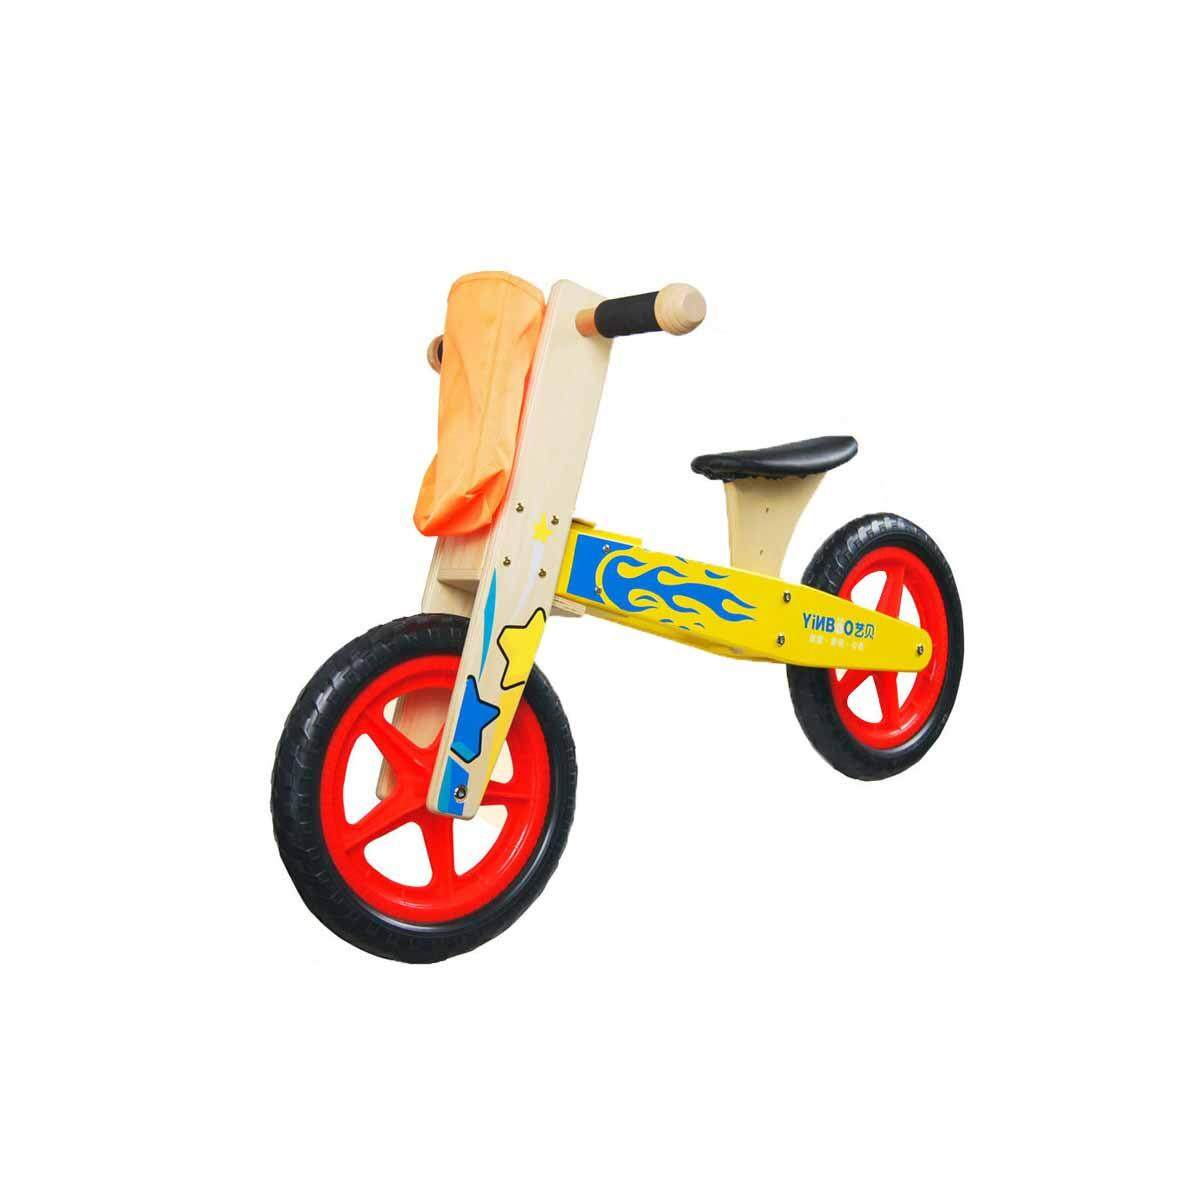 Wooden Kids Balance Bike Ride On Toy Push Bicycle Trainer Outdoor Pushing Bike